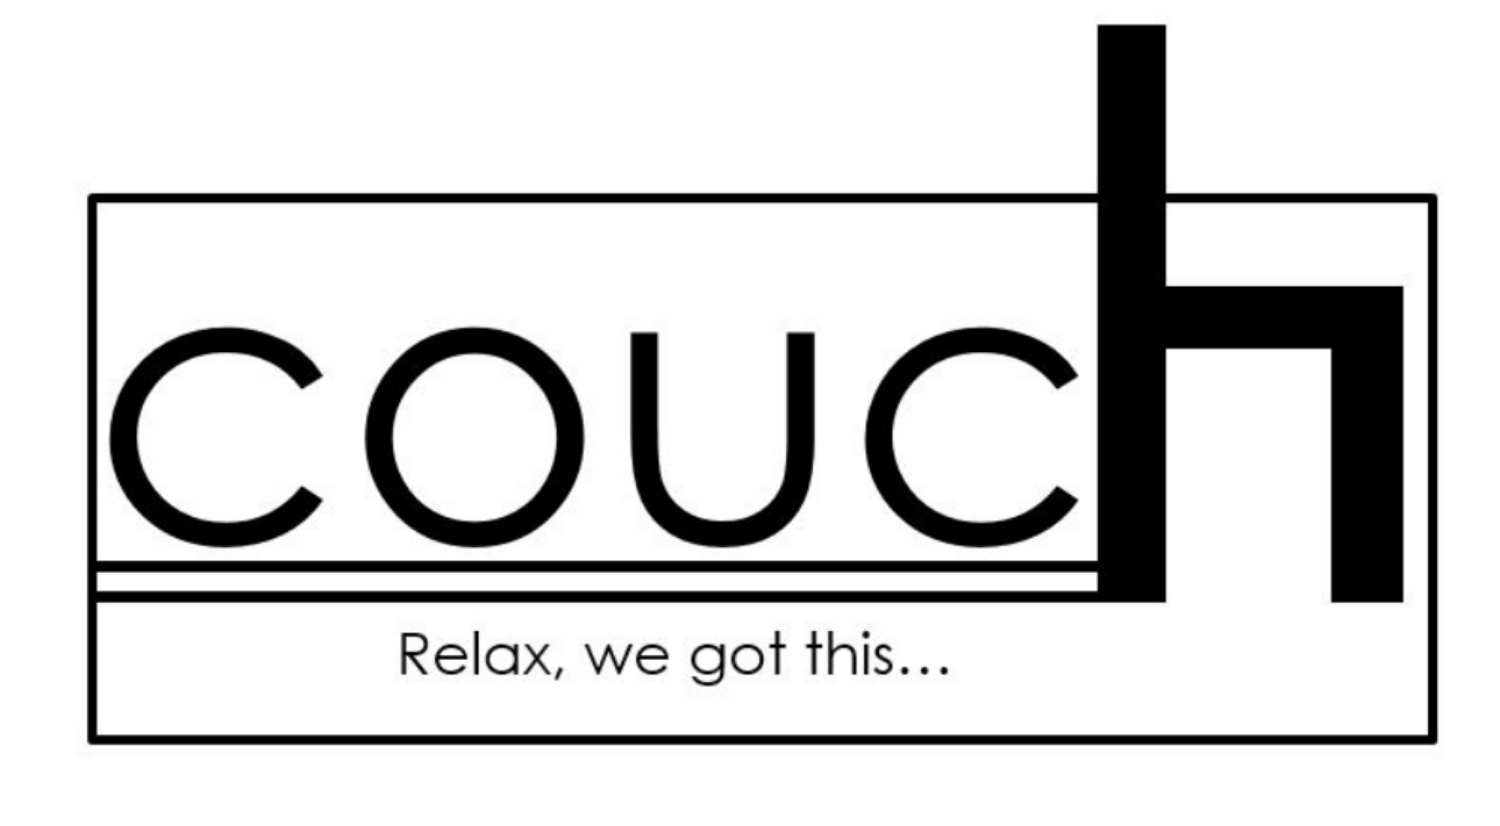 Couch LLC